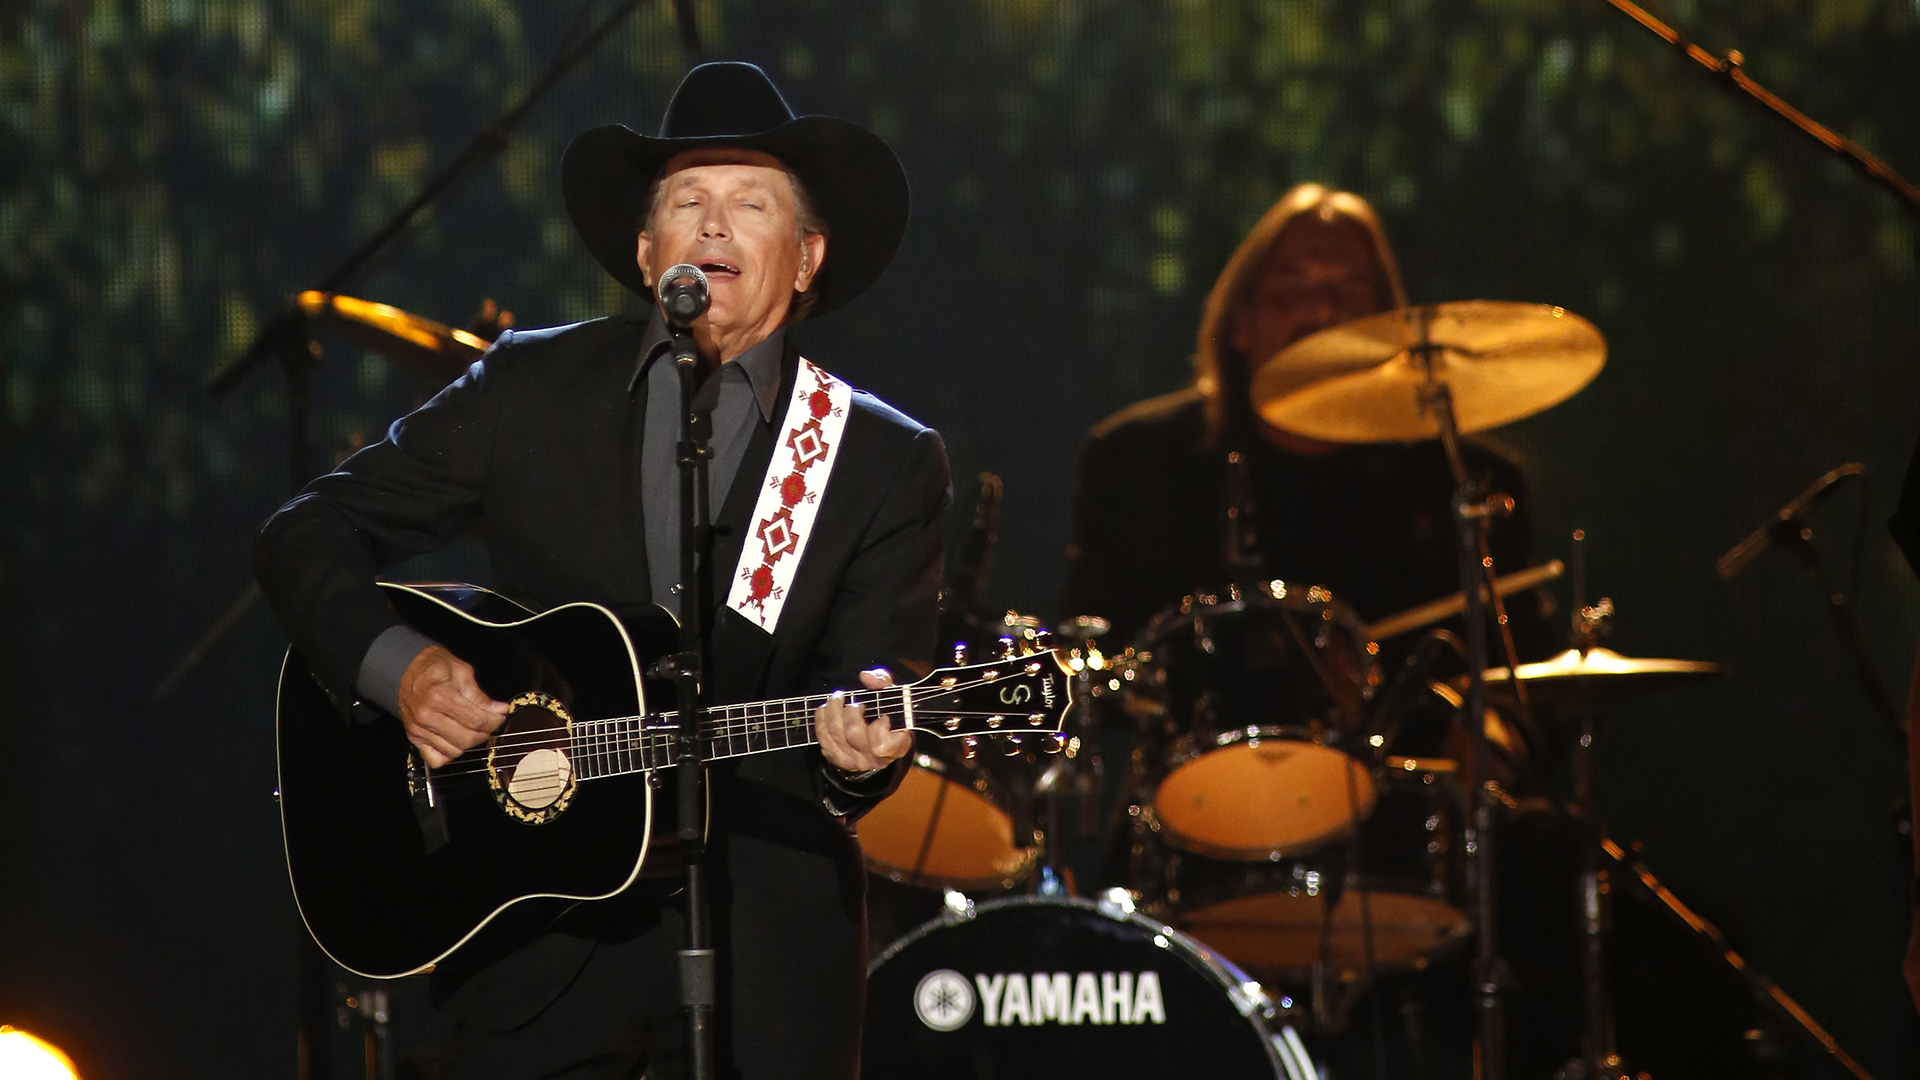 22. George Strait performs